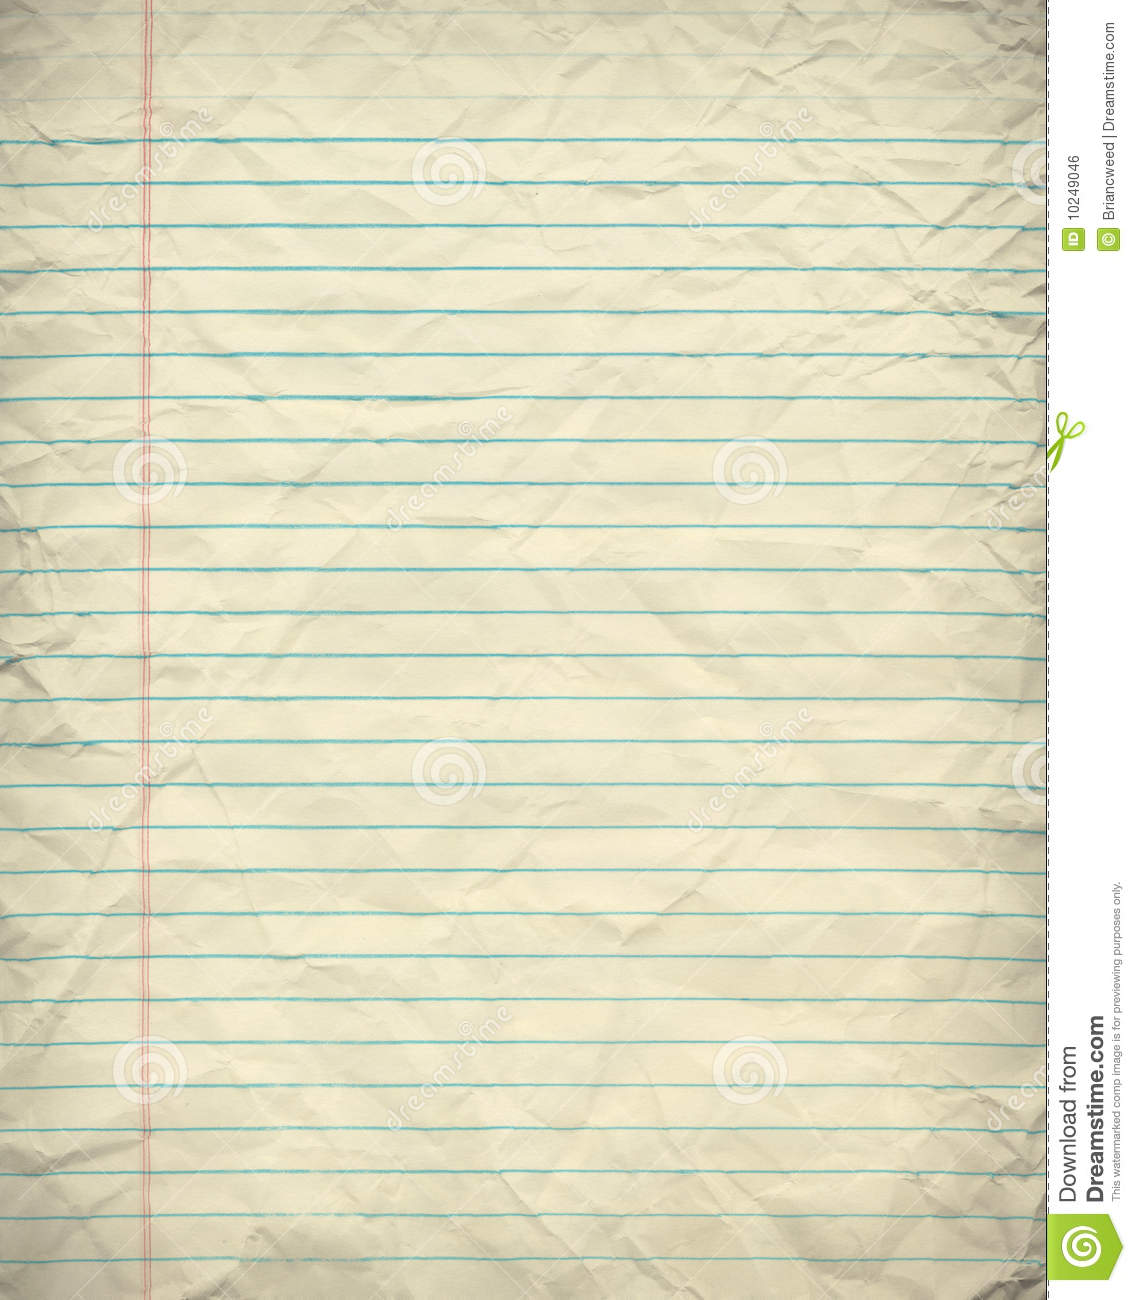 Doc474609 Blank Lined Writing Paper Blank Lined Paper – Blank Line Paper